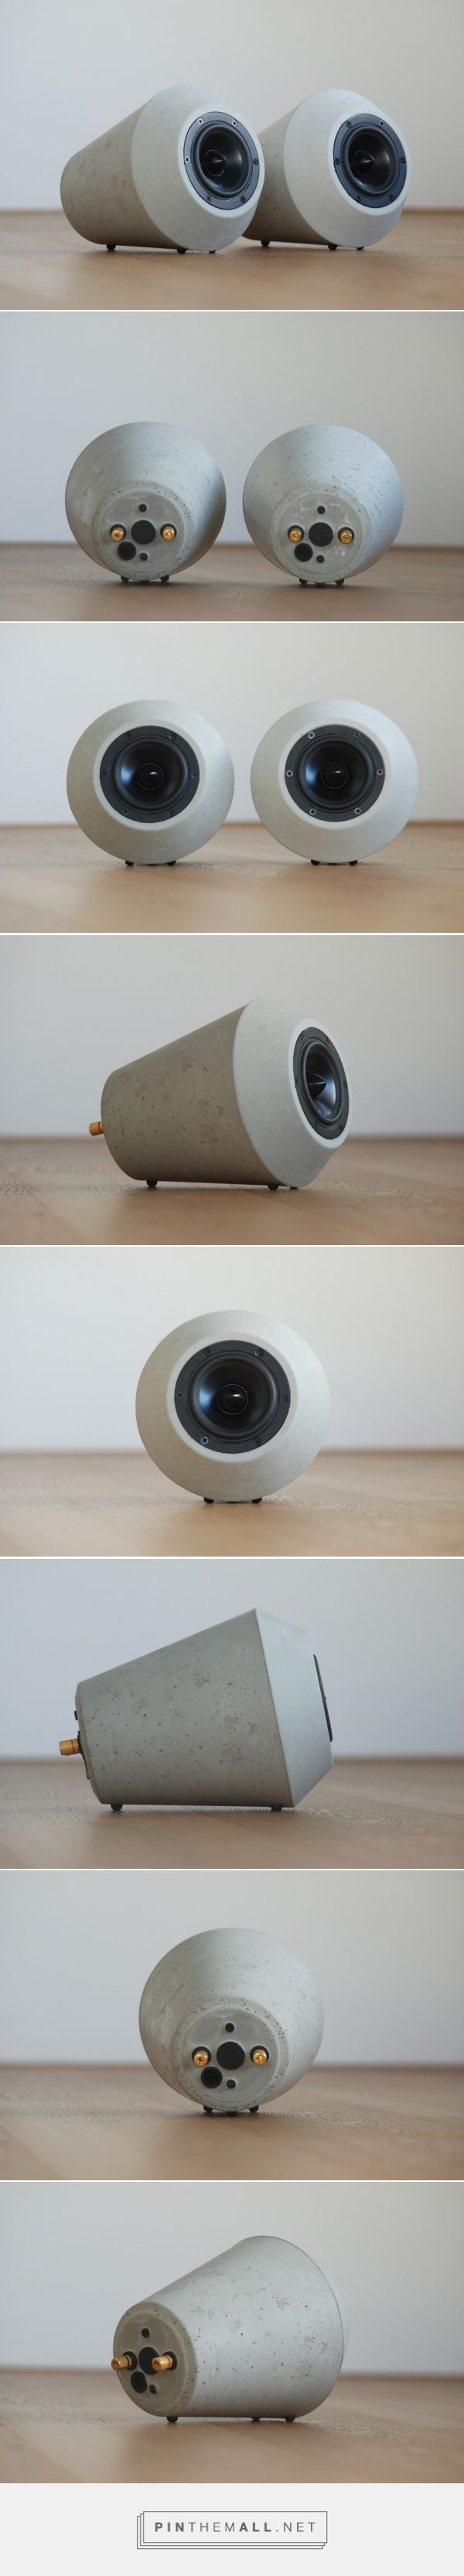 Tontreu No.1 Concrete Speakers | Designboom Shop - created via https://pinthemall.net